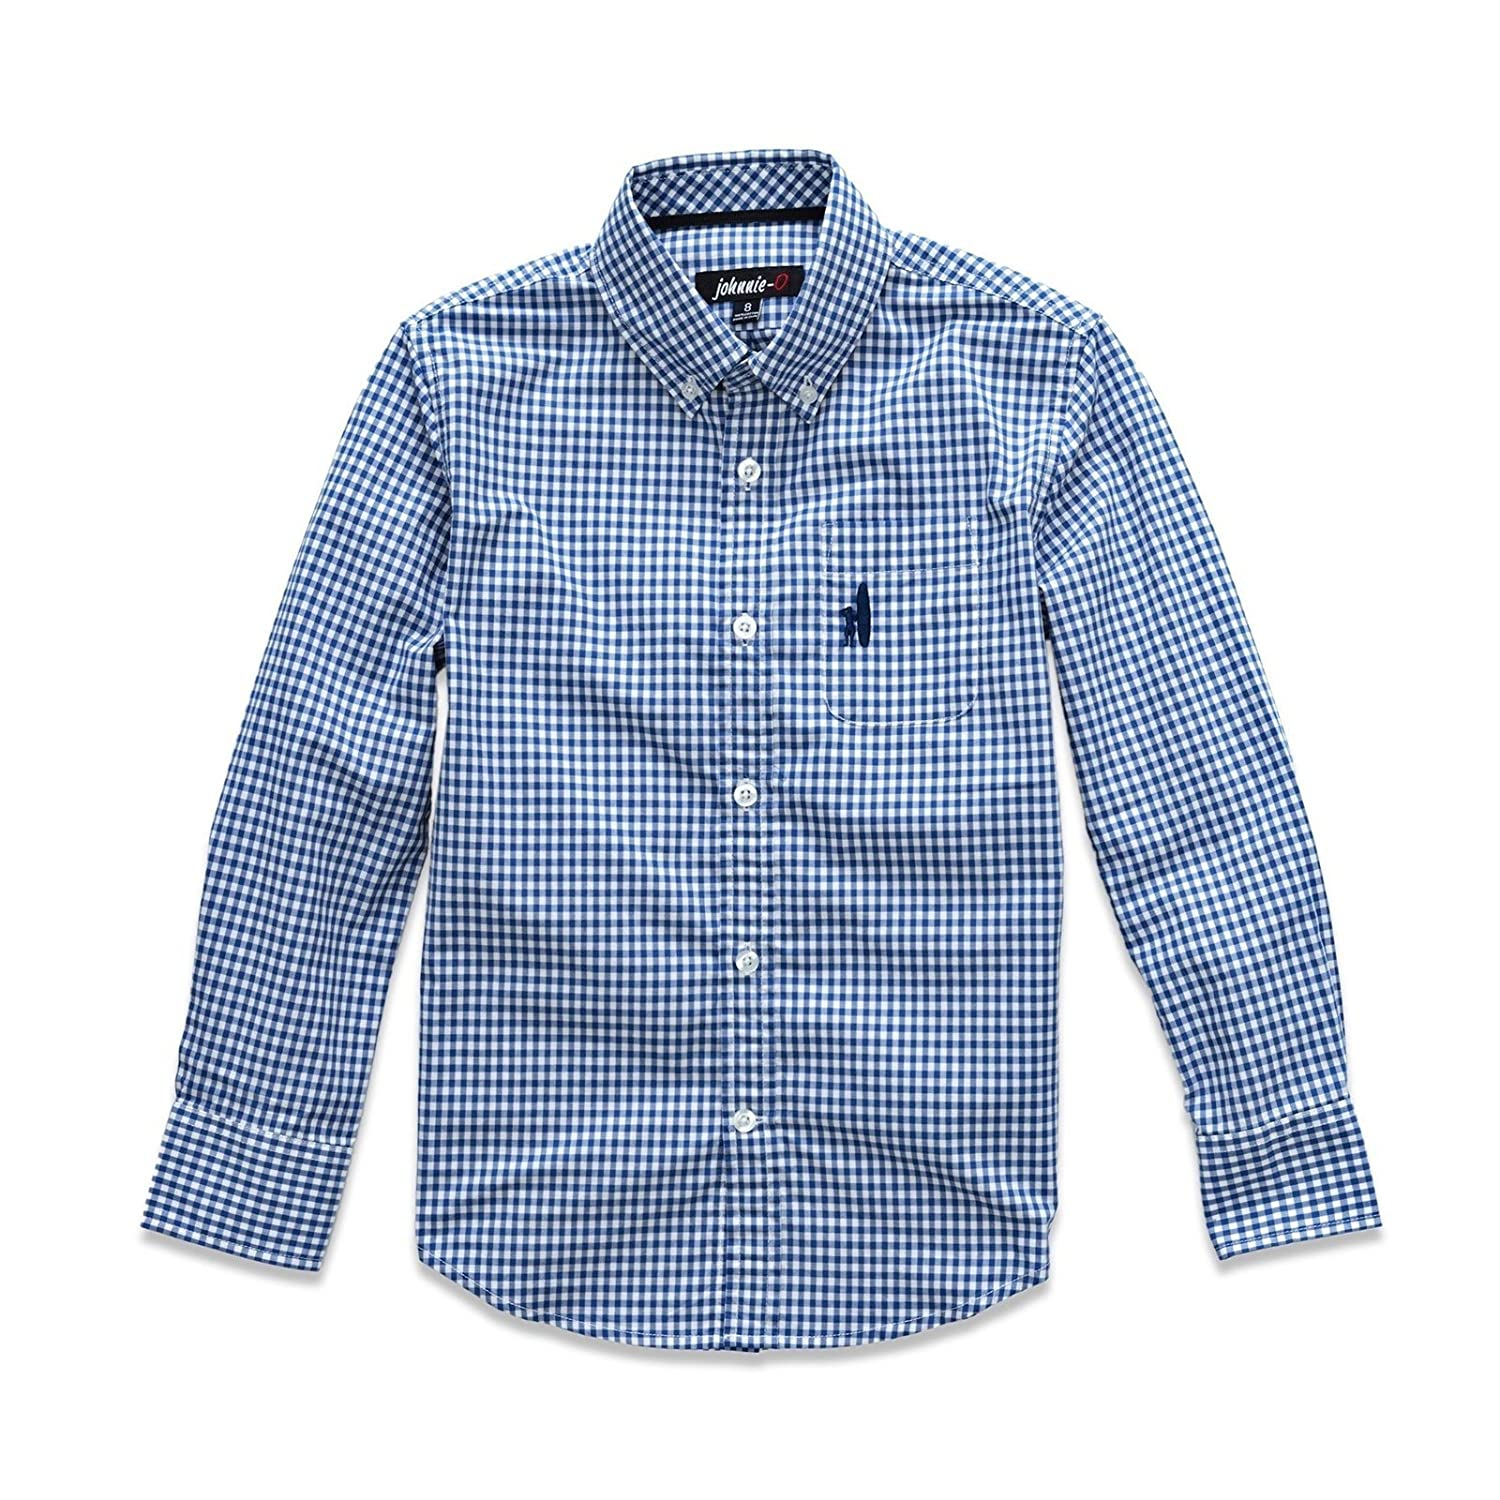 Size 6 Button-Down Shirt in Shadow The Berner Jr